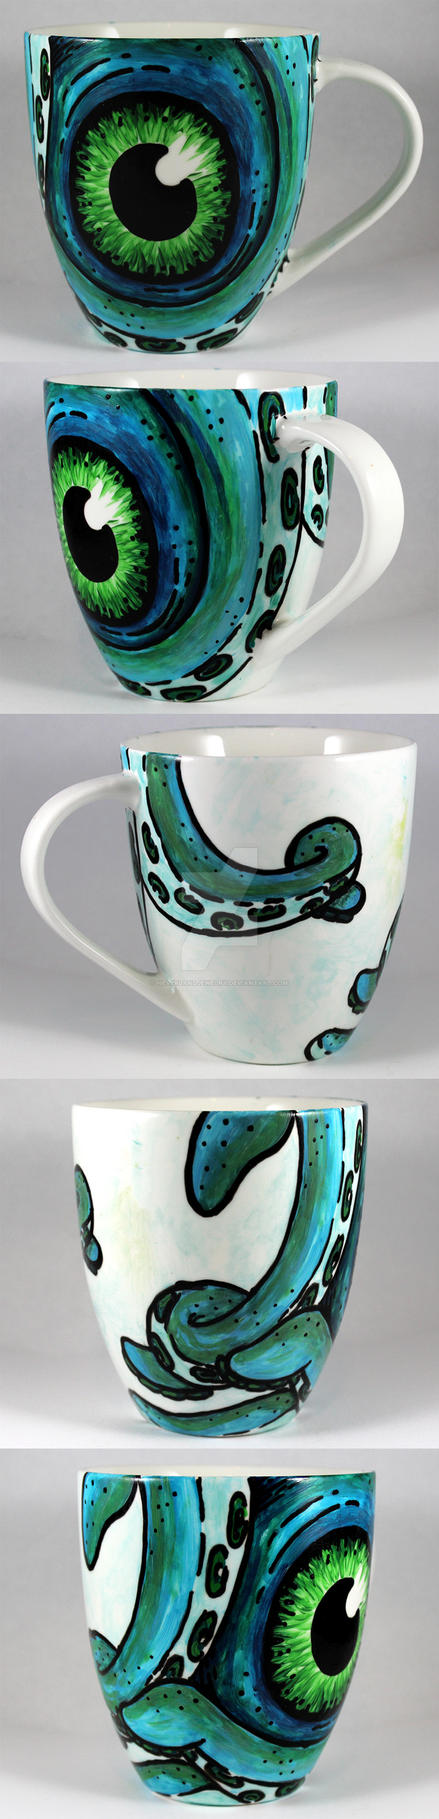 Handpainted Blue Octopus Cup by NeverlandJewelry